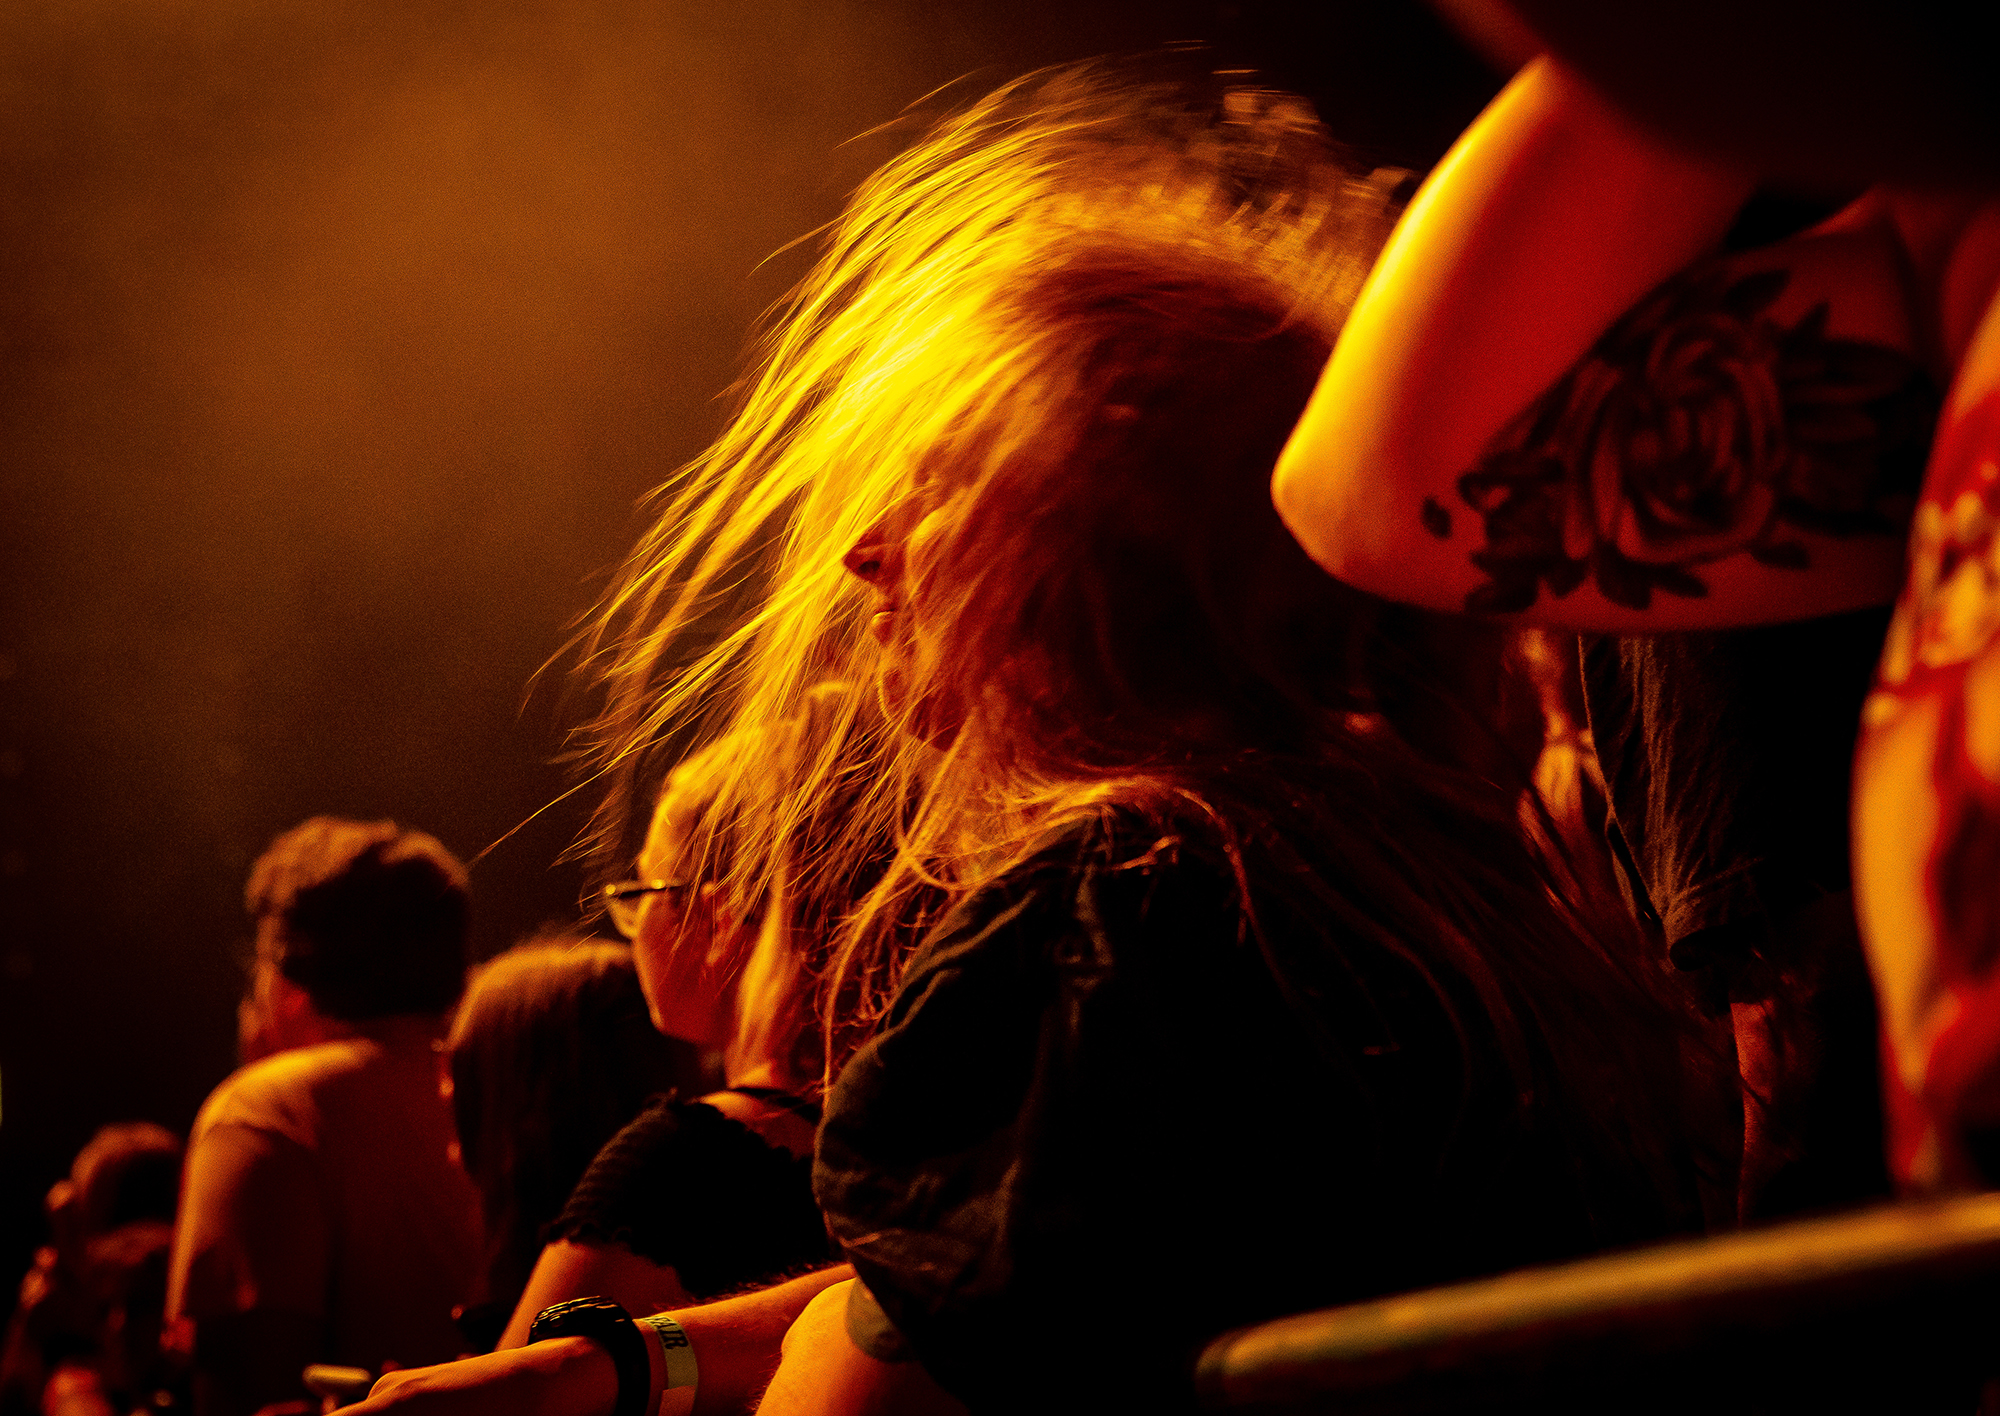 Fans join in with headbanging as band Halestorm performs on the Grandstand Stage during the Illinois State Fair, Saturday, Aug. 11, 2018, in Springfield, Ill. [Justin L. Fowler/The State Journal-Register]